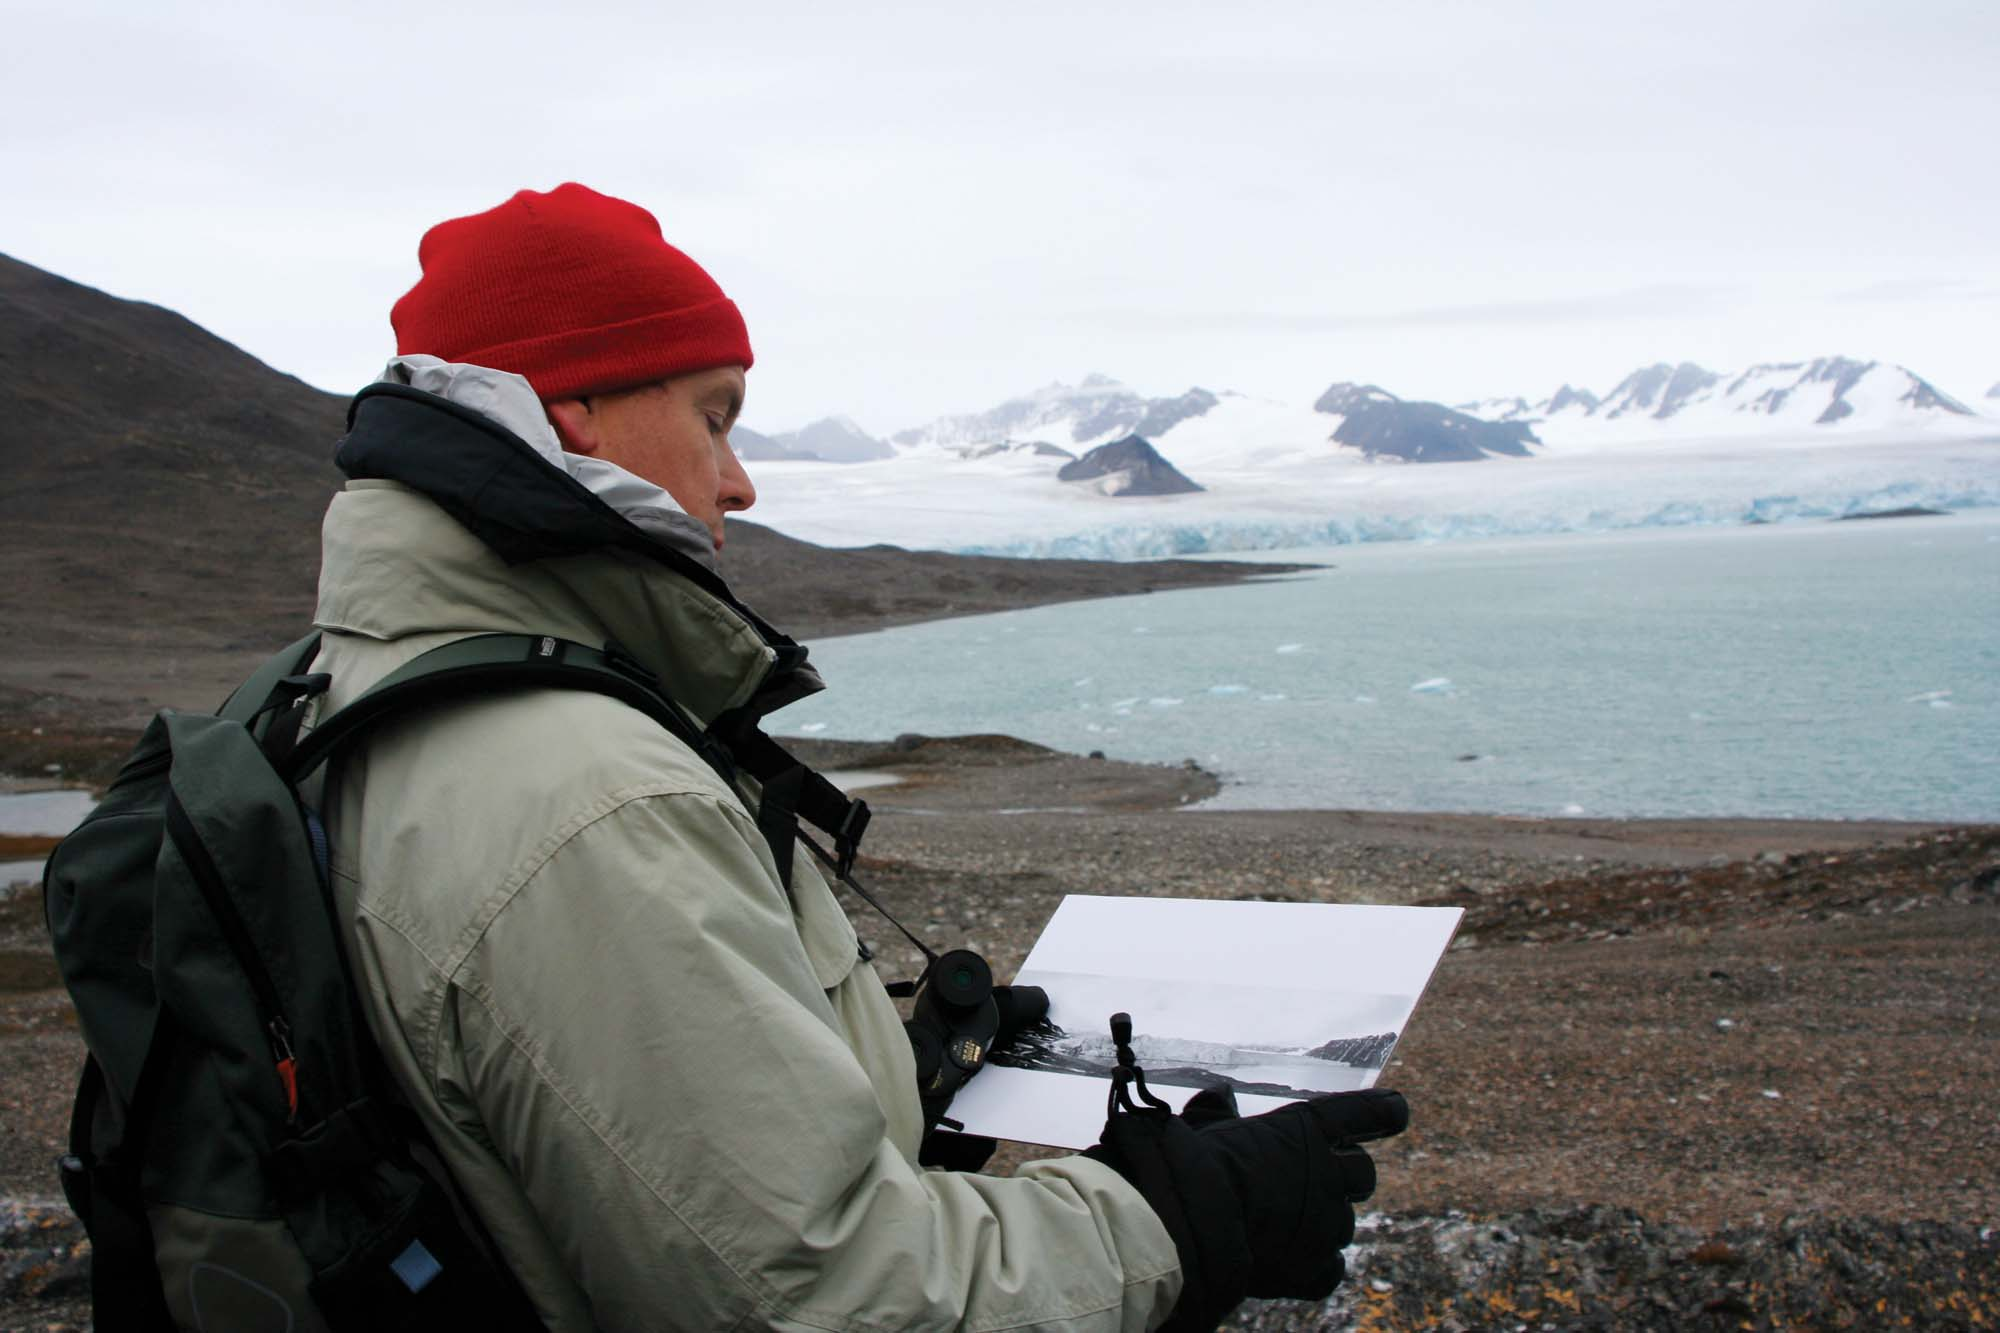 The prince follows in his great-great-grandfather Prince Albert I's Arctic footsteps at Norway's Svalbard archipelago in 2005 (photo by Spitzberg/Prince's Palace of Monaco)